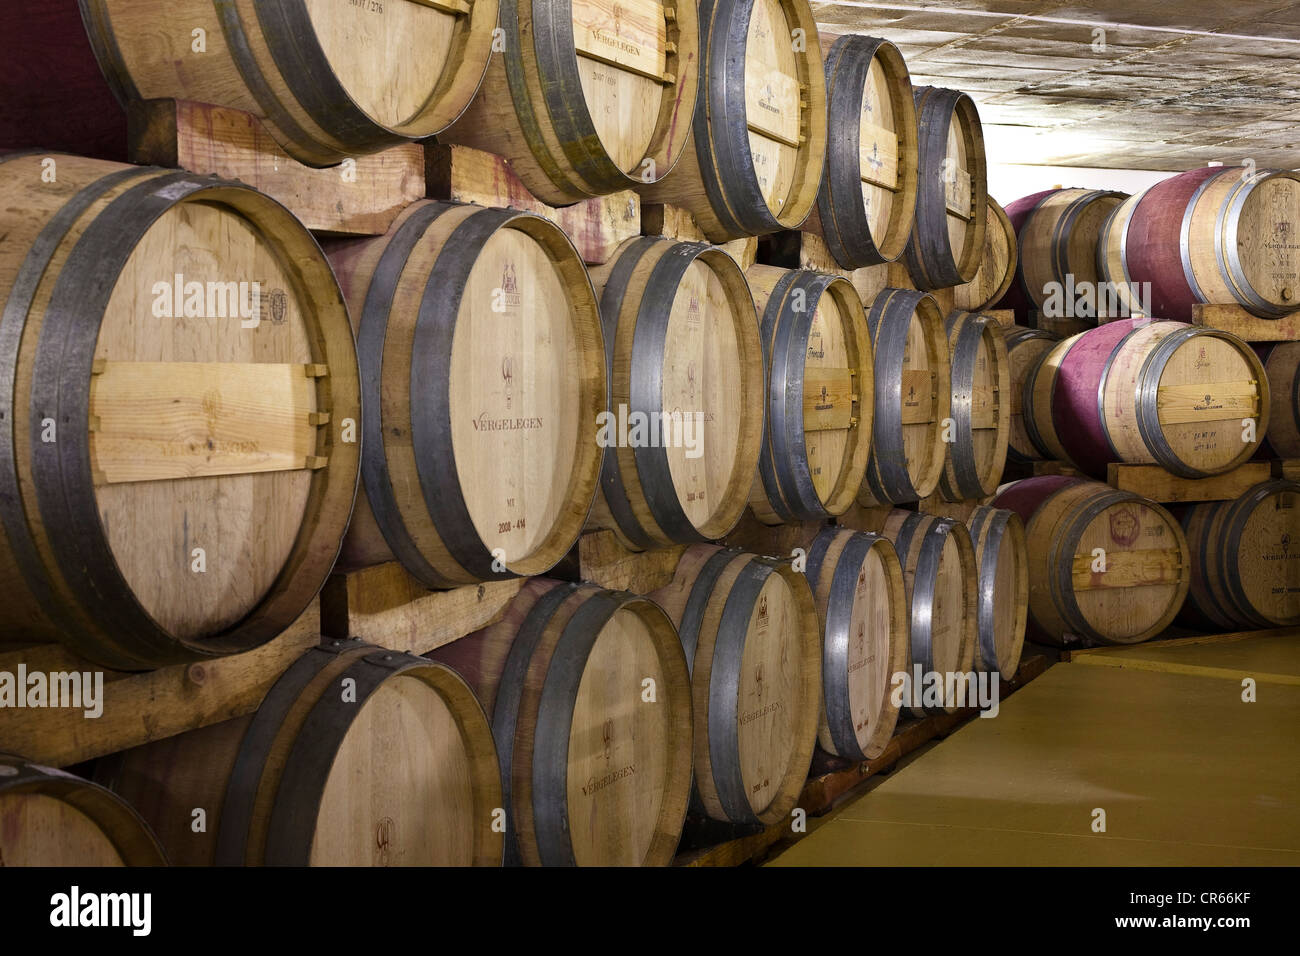 South Africa, Western Cape, Somerset West, Vergelen vineyard domain funded by former governor Willem Adriaan Van - Stock Image